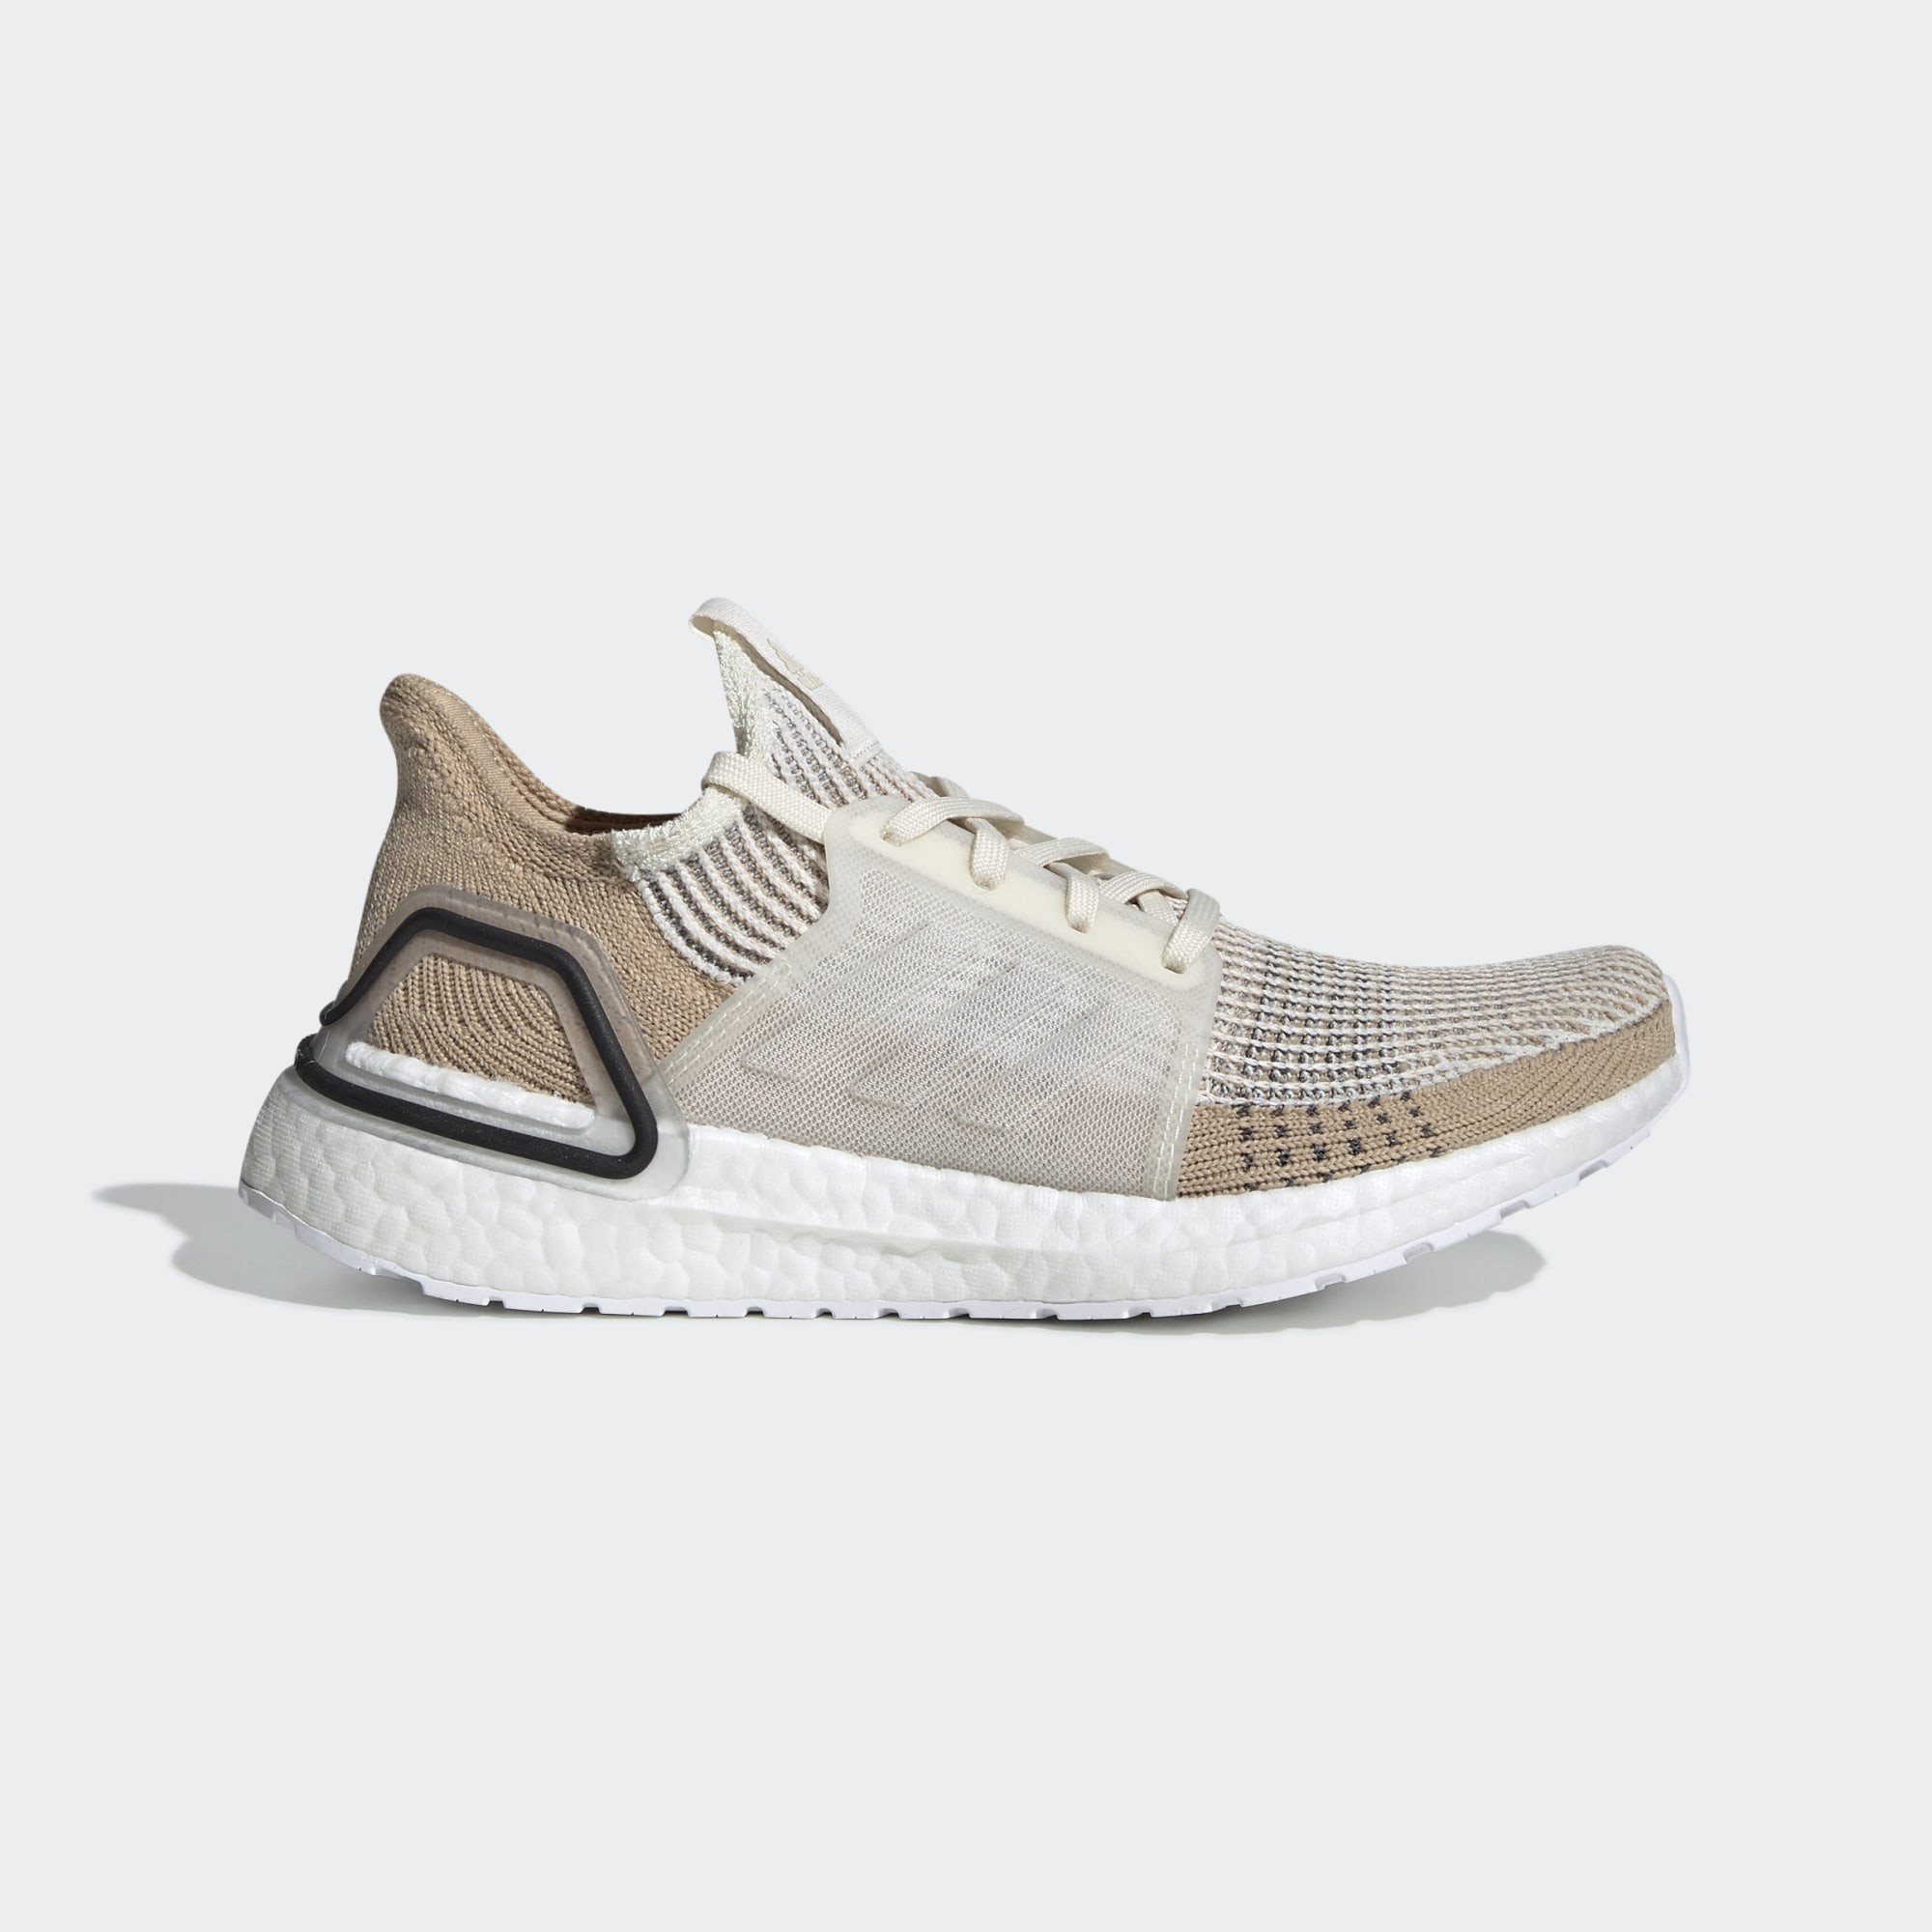 adidas Ultra Boost 2019 Chalk White Pale Nude W B75878